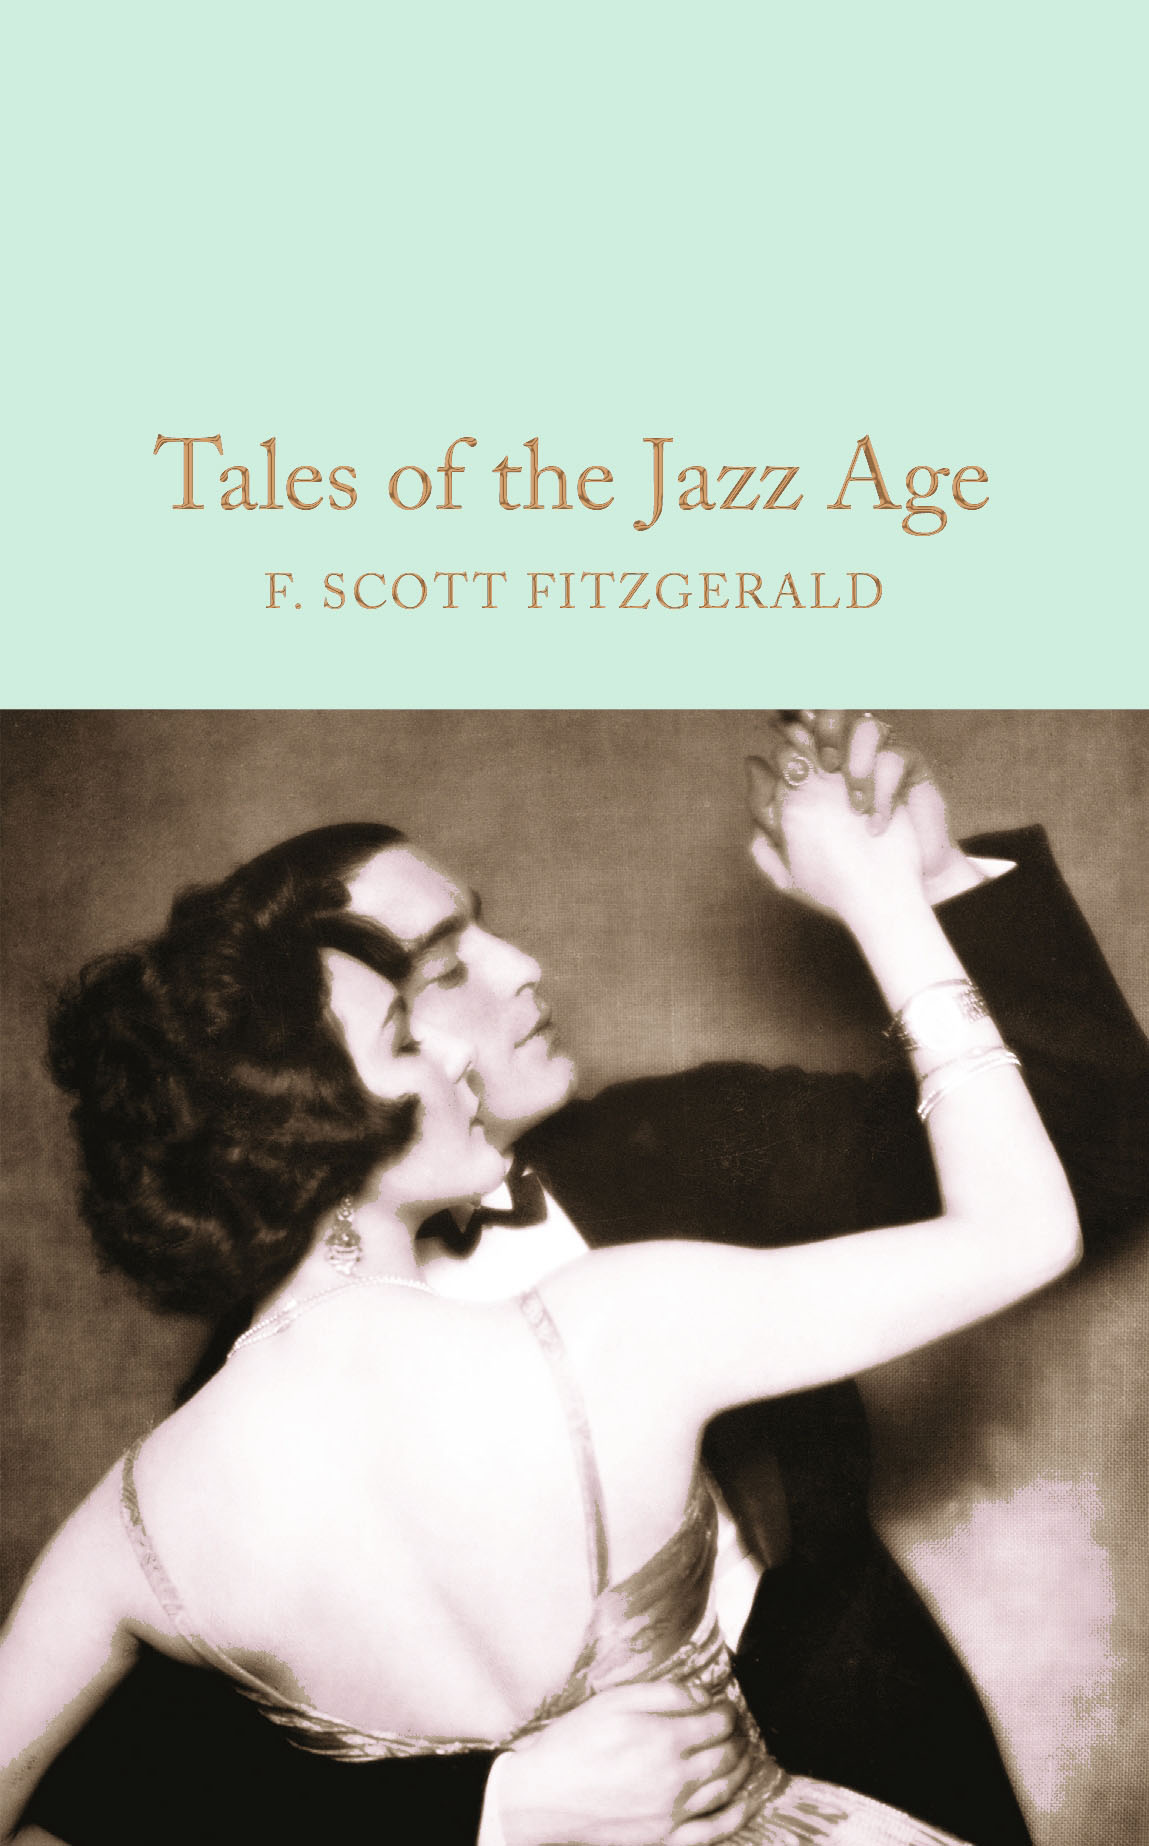 Tales of the Jazz Age fitzgerald s tales of the jazz age